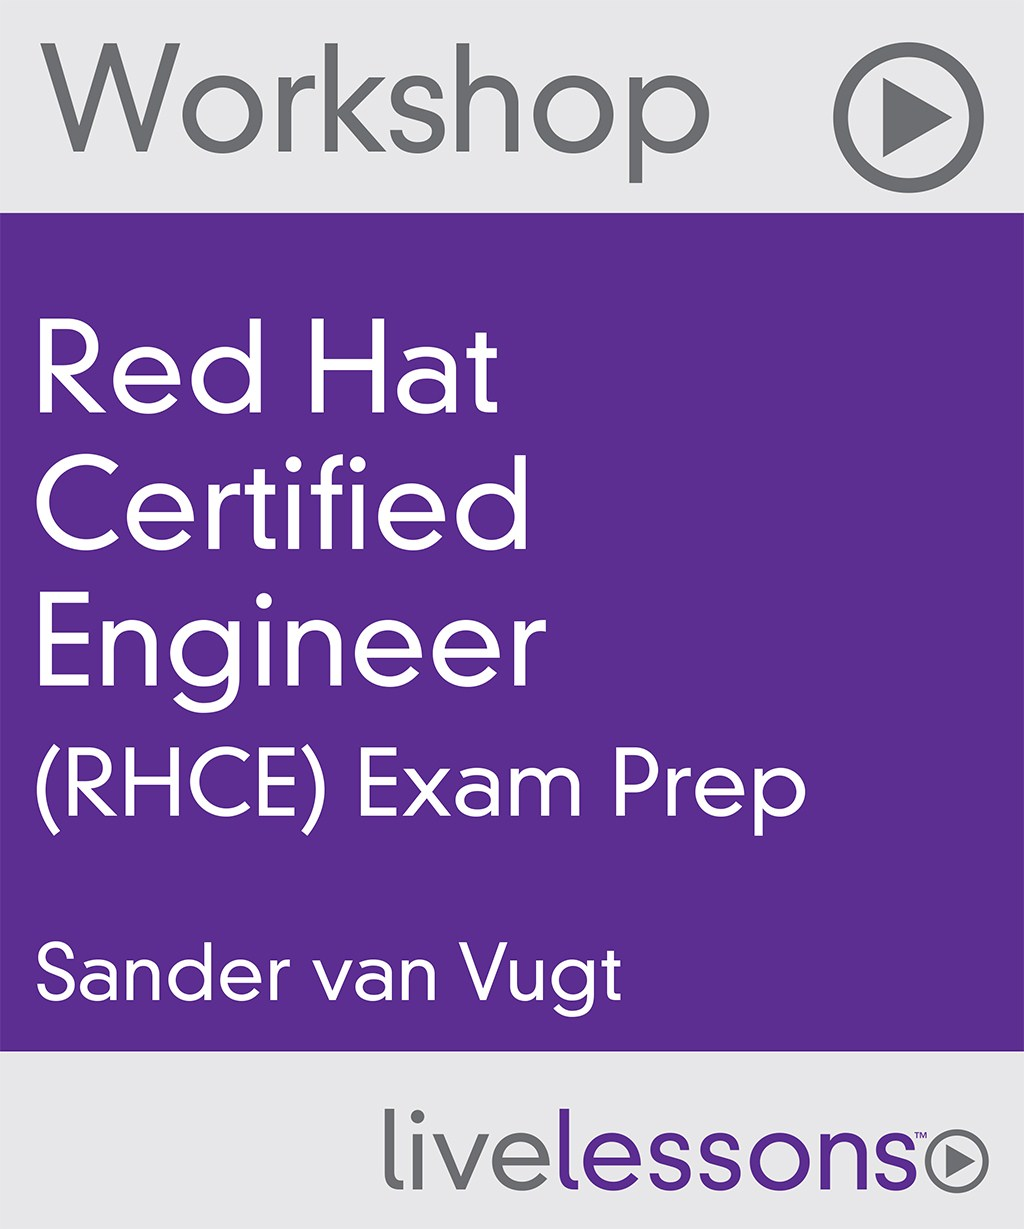 Red Hat Certified Engineer (RHCE) Exam Prep Video Workshop (Download)